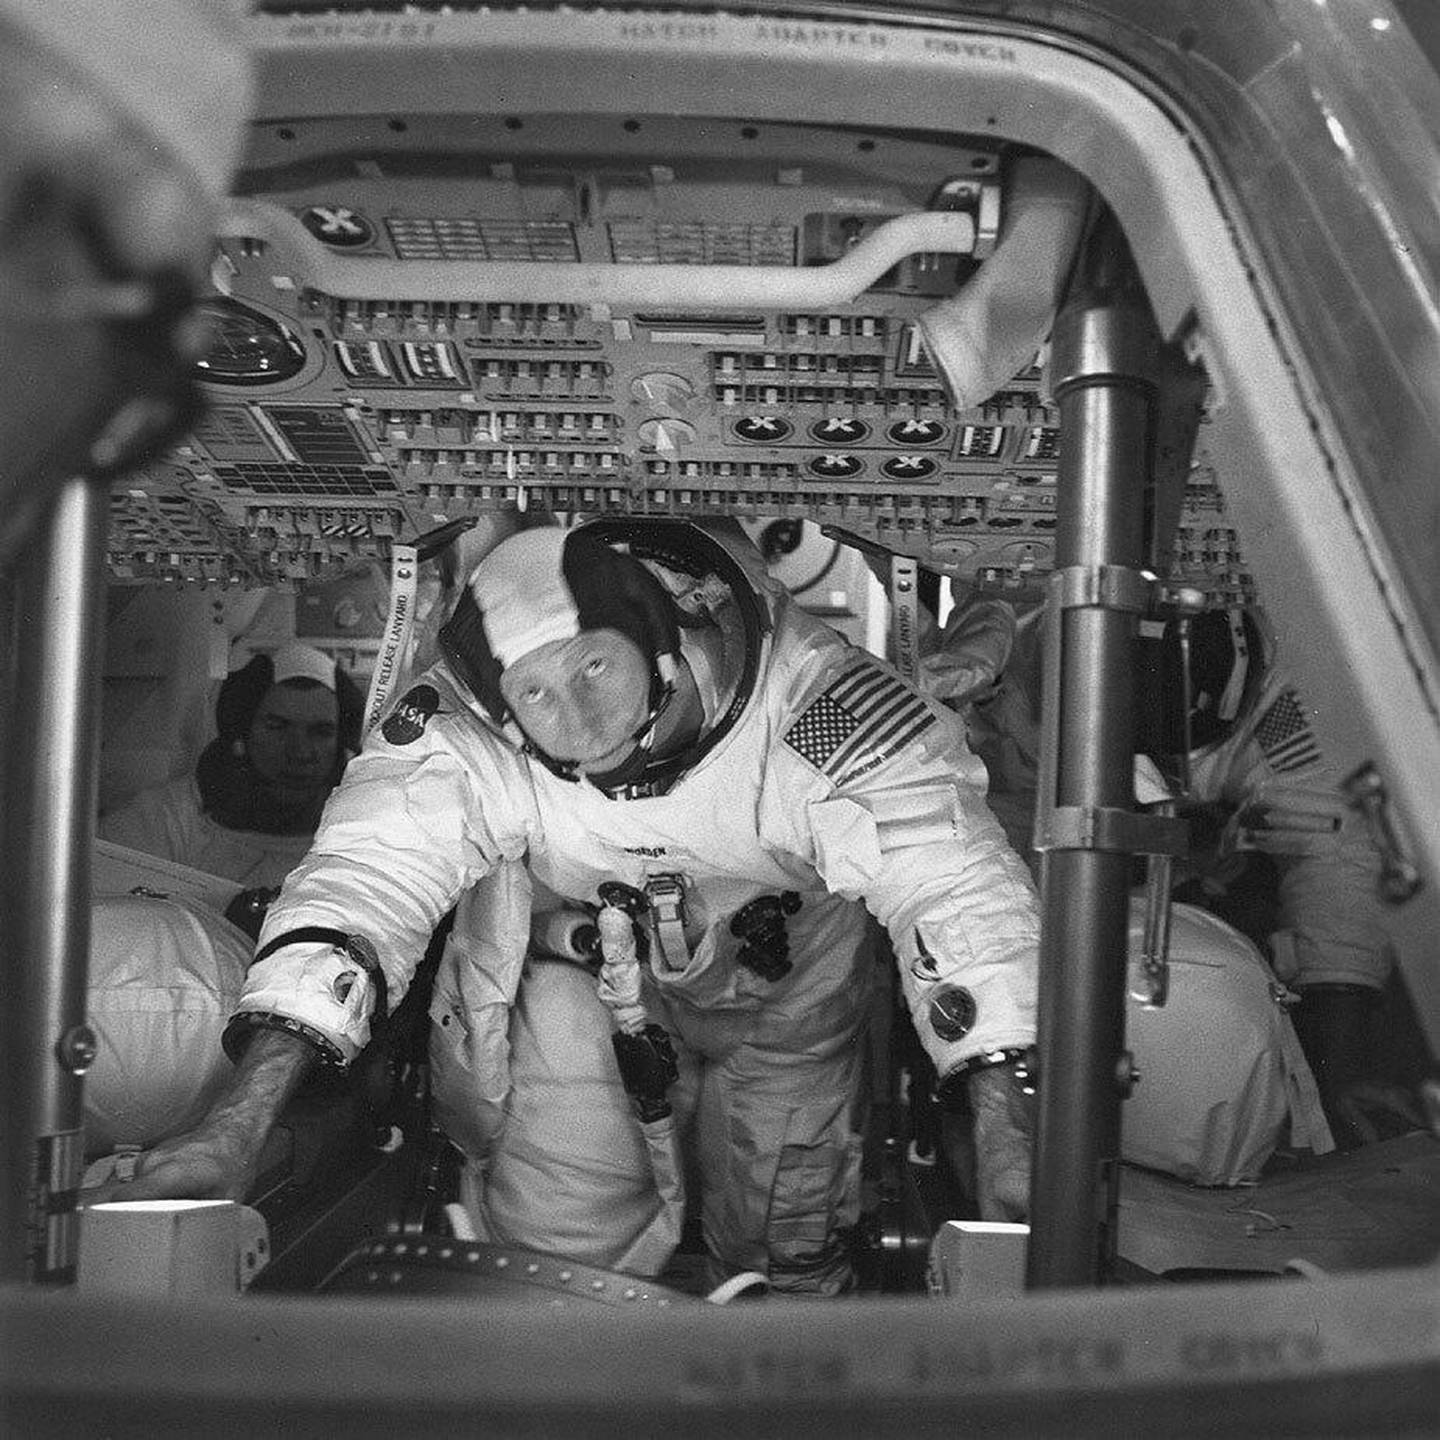 This March 26, 1971 photo made available by NASA shows astronauts Al Worden, center, Dave Scott, left, and Jim Irwin in the Command Module for an altitude chamber test at Cape Canaveral, Fla. Worden, who circled the moon alone in 1971 while his two crewmates tried out the first lunar rover, has died at age 88, his family said Wednesday, March 18, 2020. (NASA via AP)